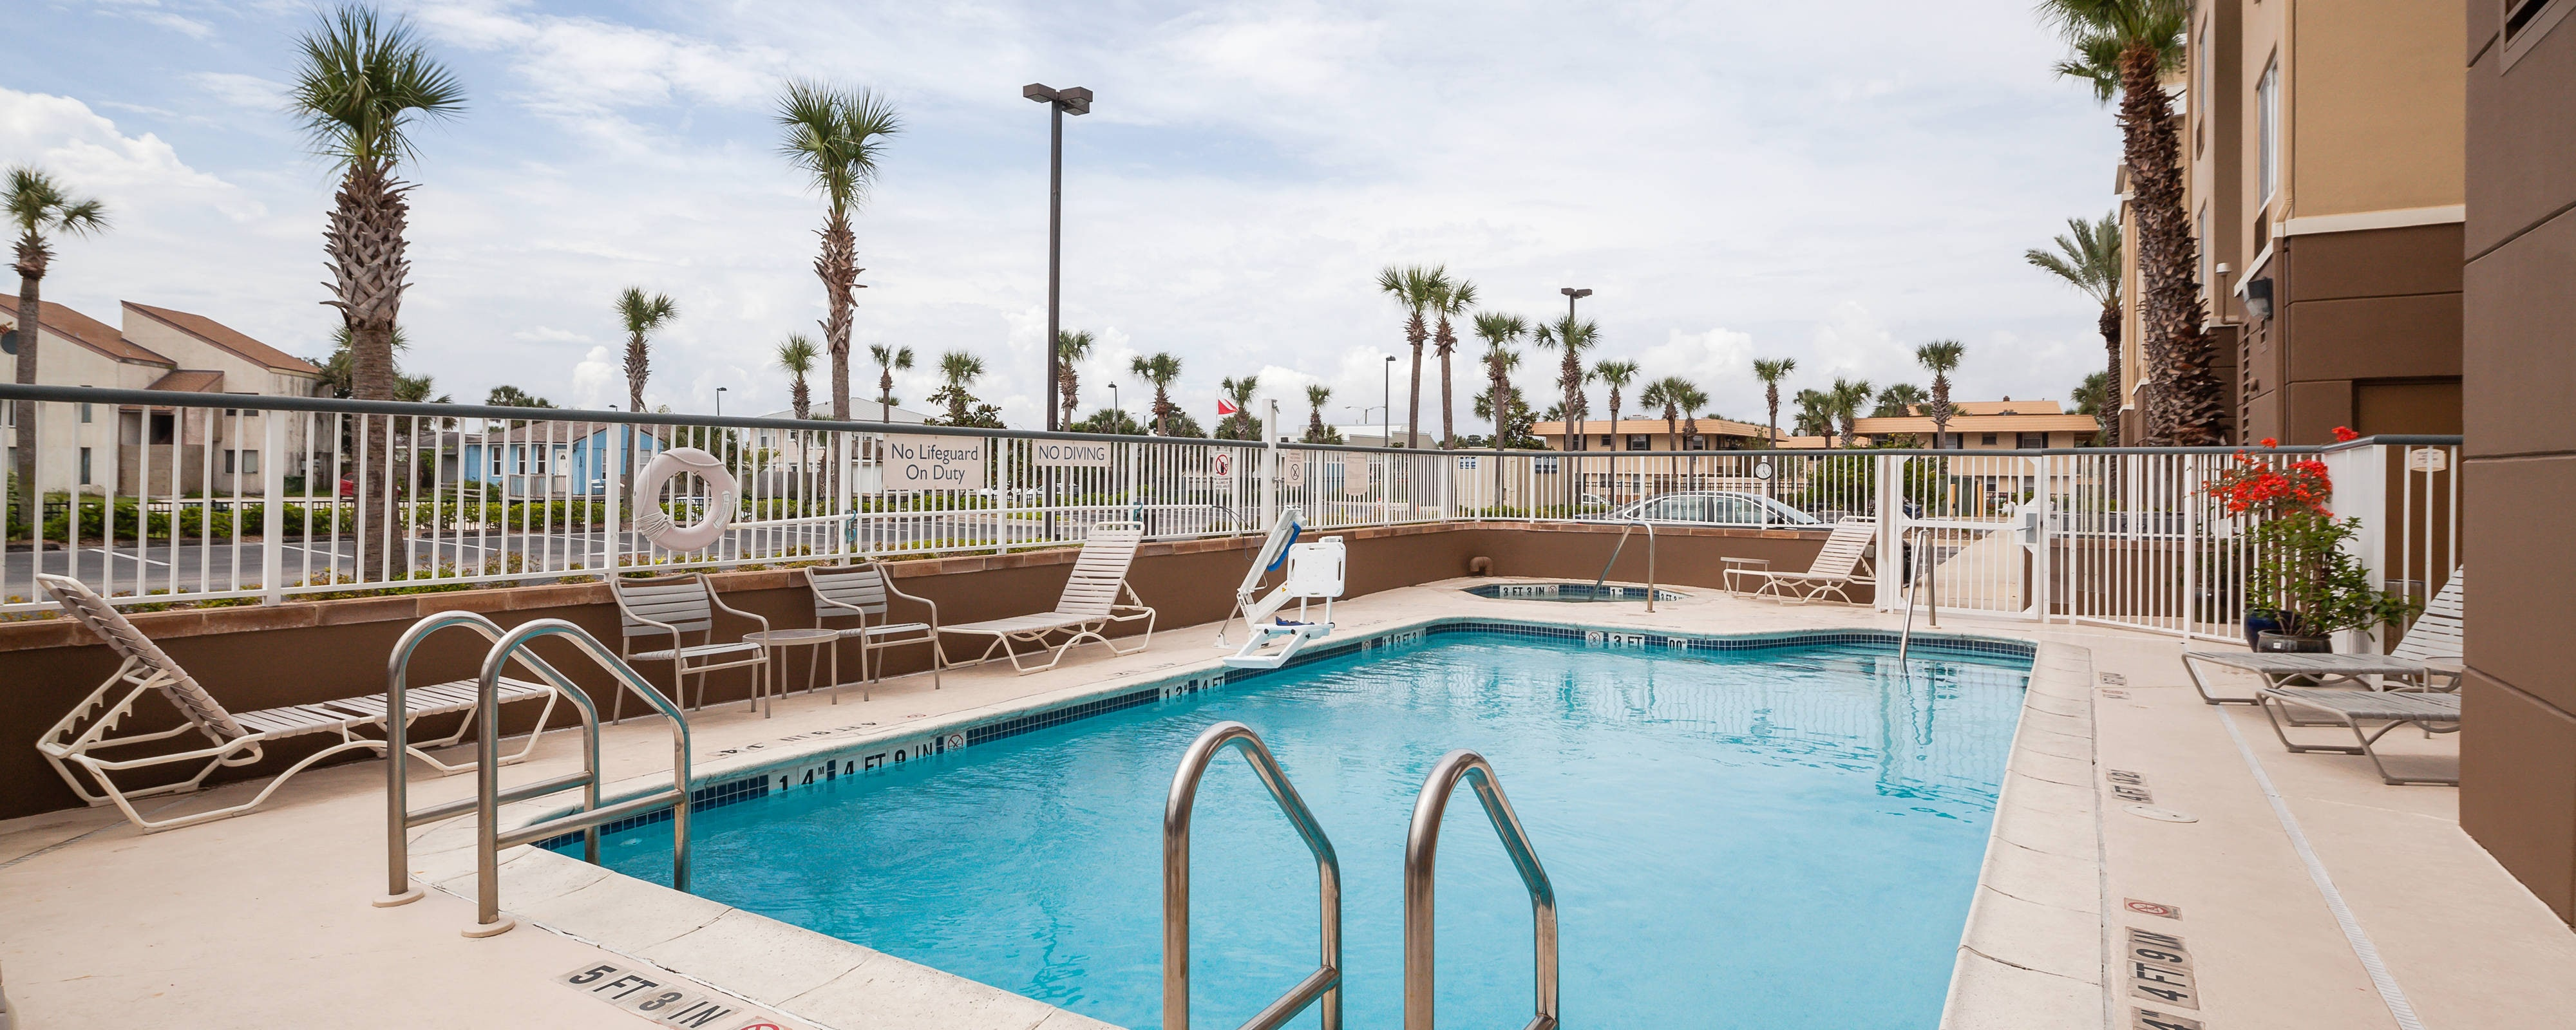 Jacksonville Beach Hotel Outdoor Pool